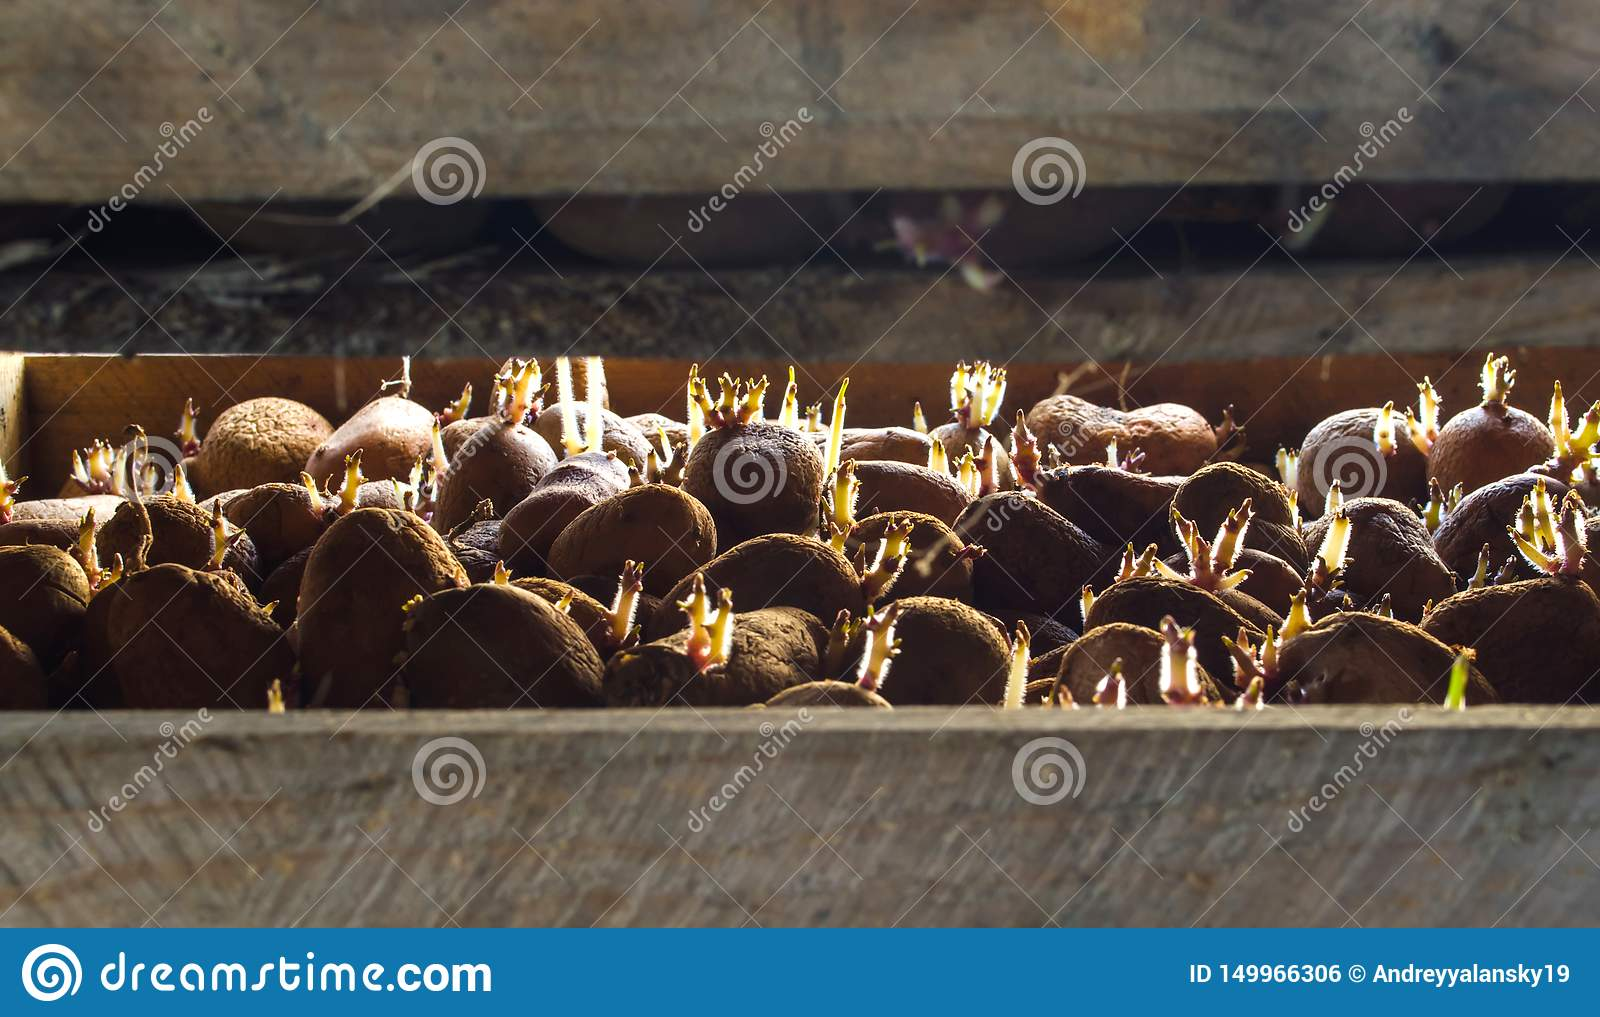 Germinating seed potatoes with roots in wooden boxes. Traditional agriculture. Farming. Food stocks, harvest